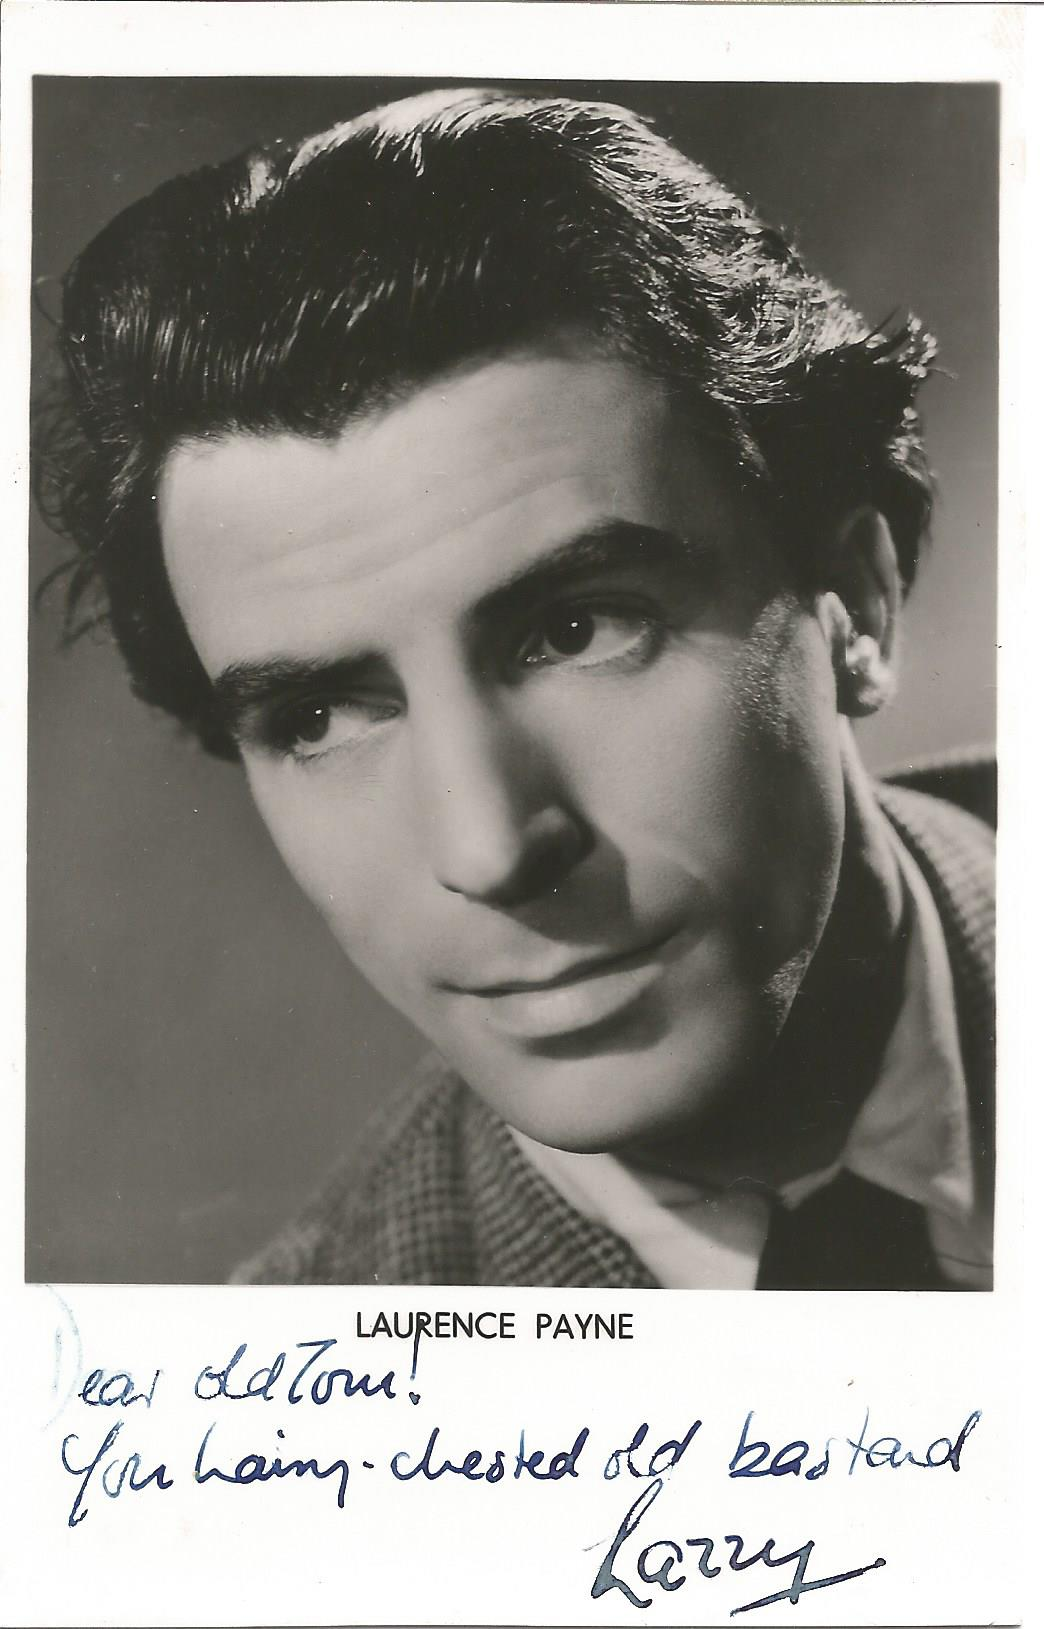 Actor Laurence Payne vintage signed 5½x3½ black and white photo, dedicated to Tom. Laurence